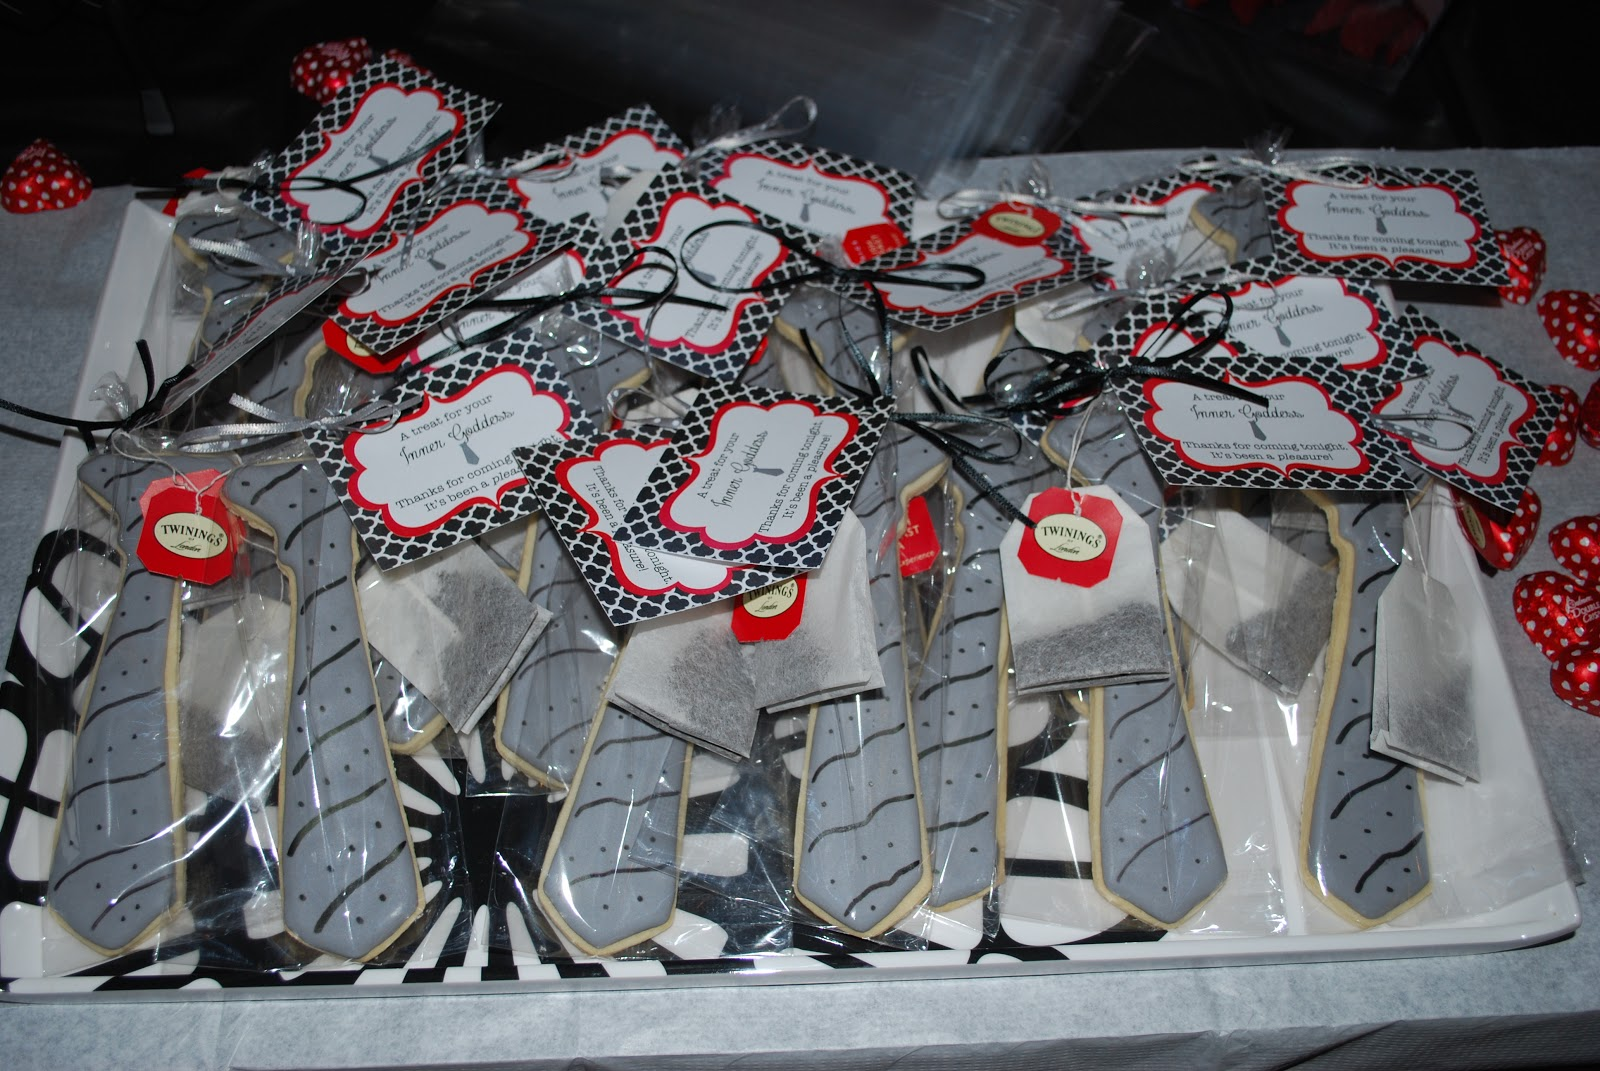 sample shades of grey whimsy wise events fifty shades of grey  whimsy wise events fifty shades of grey party and party gray tie cookies and english tea